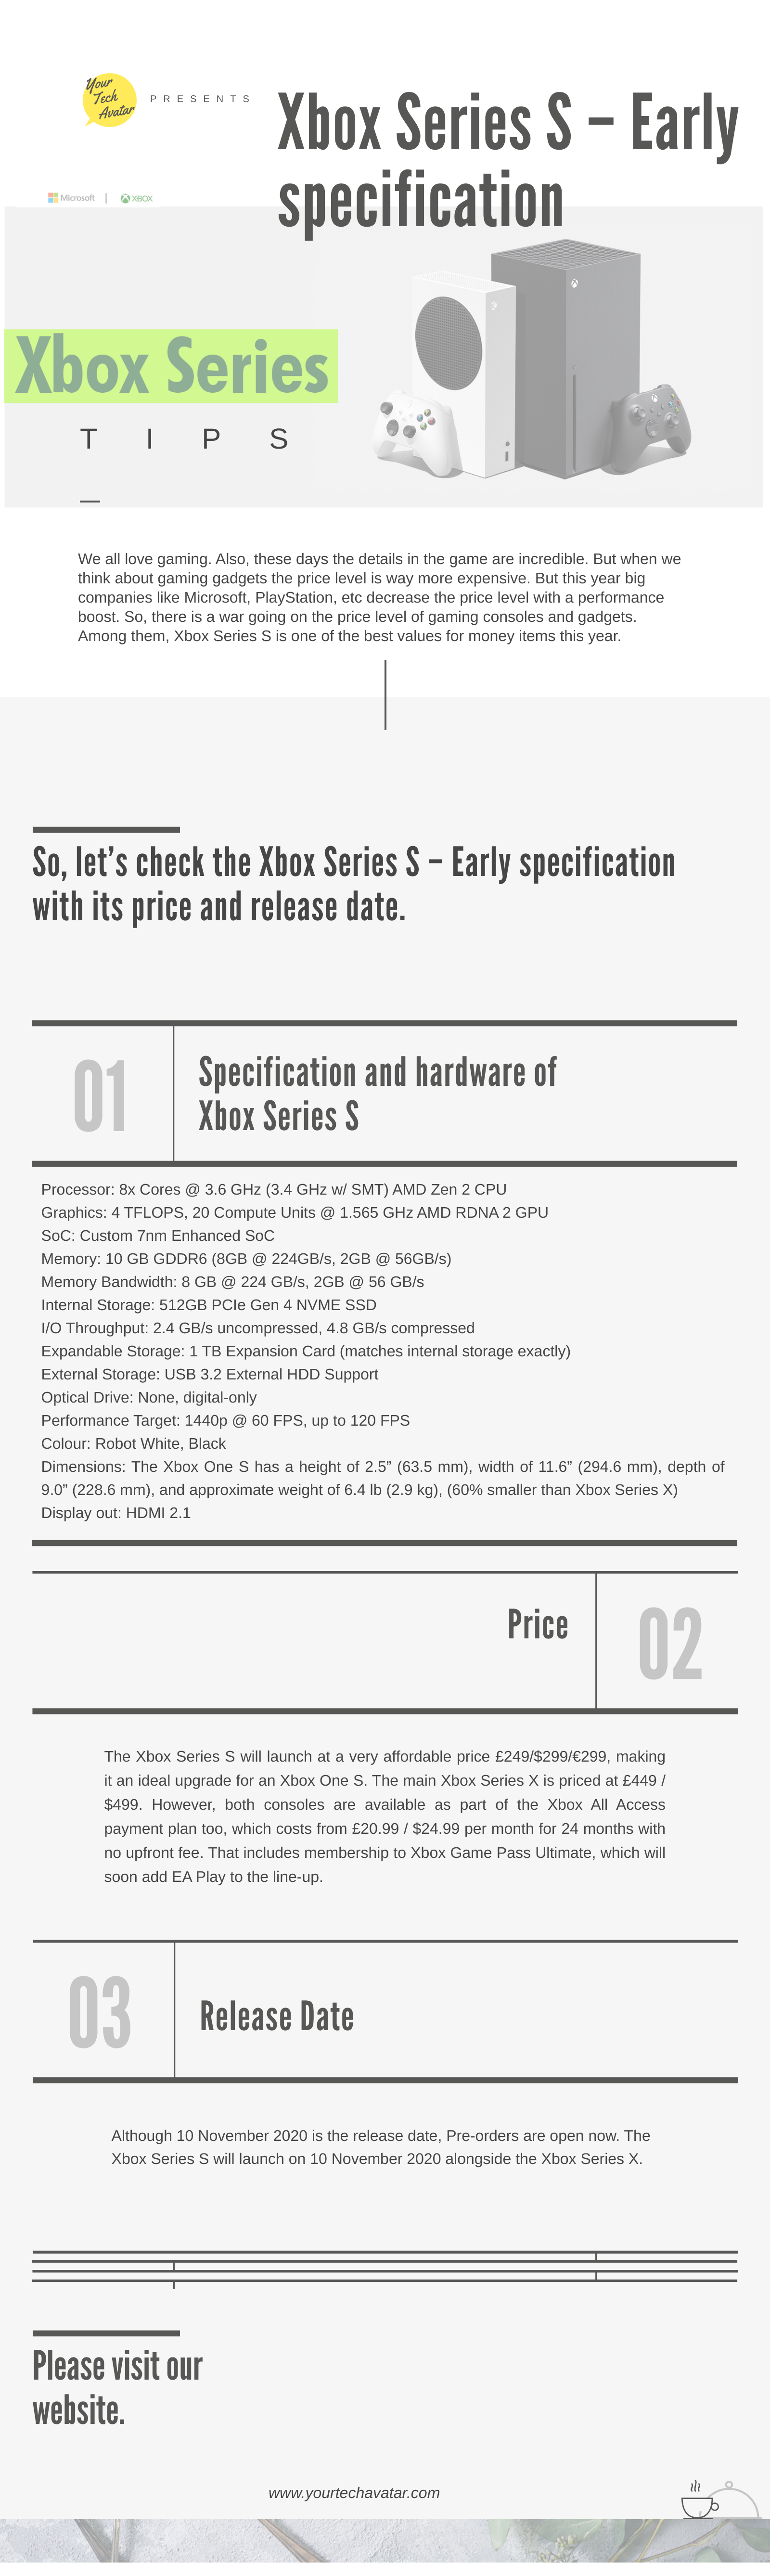 Infographic for Xbox Series S - Early specification